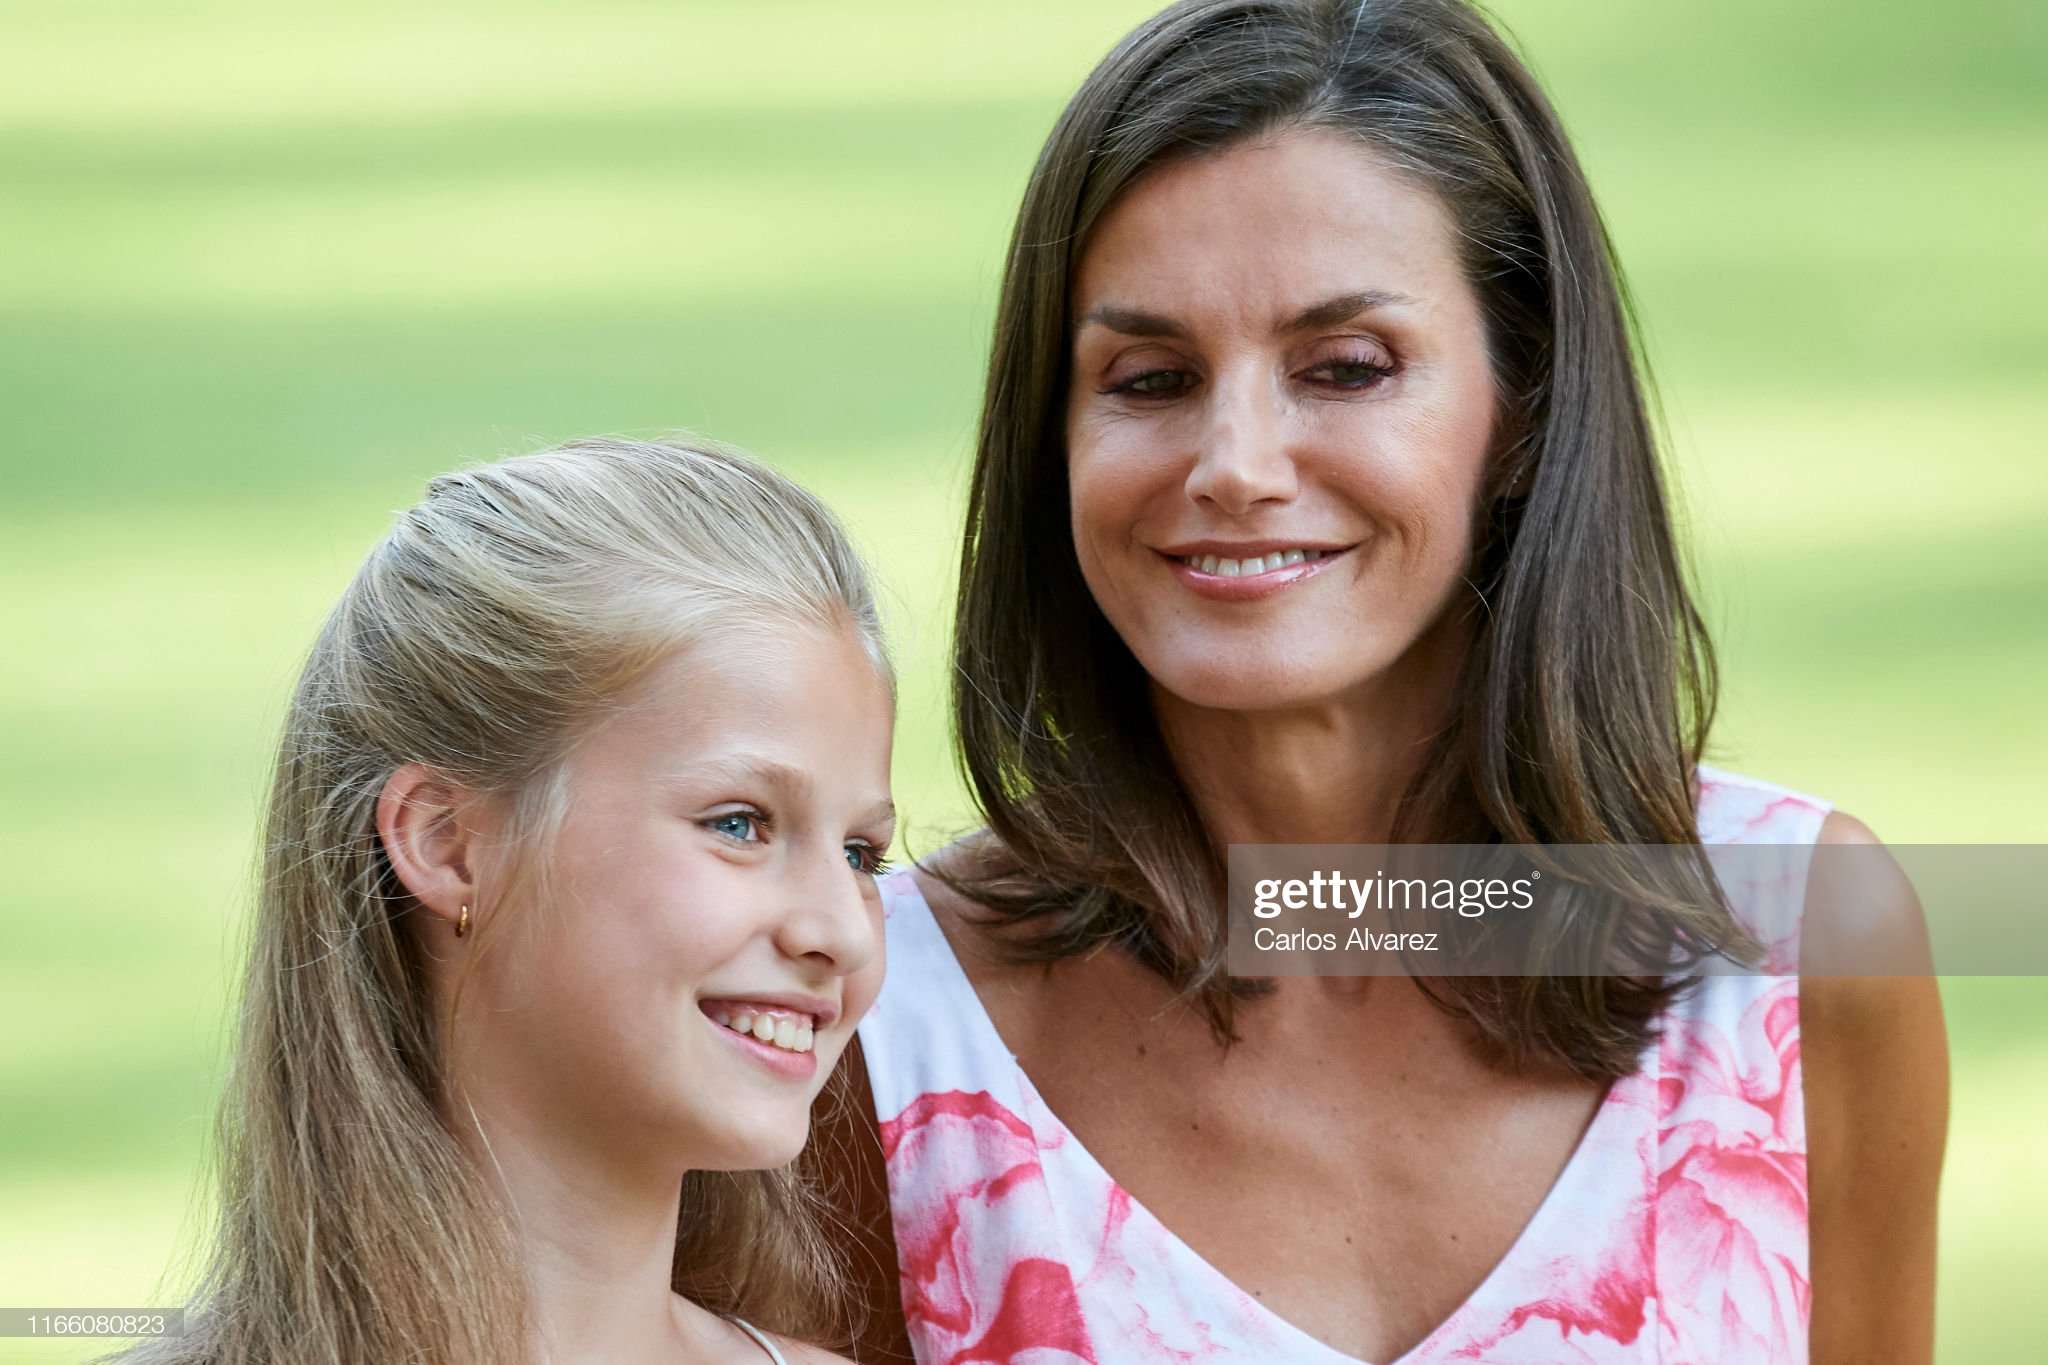 queen-letizia-of-spain-and-princess-leonor-of-spain-pose-for-the-picture-id1166080823